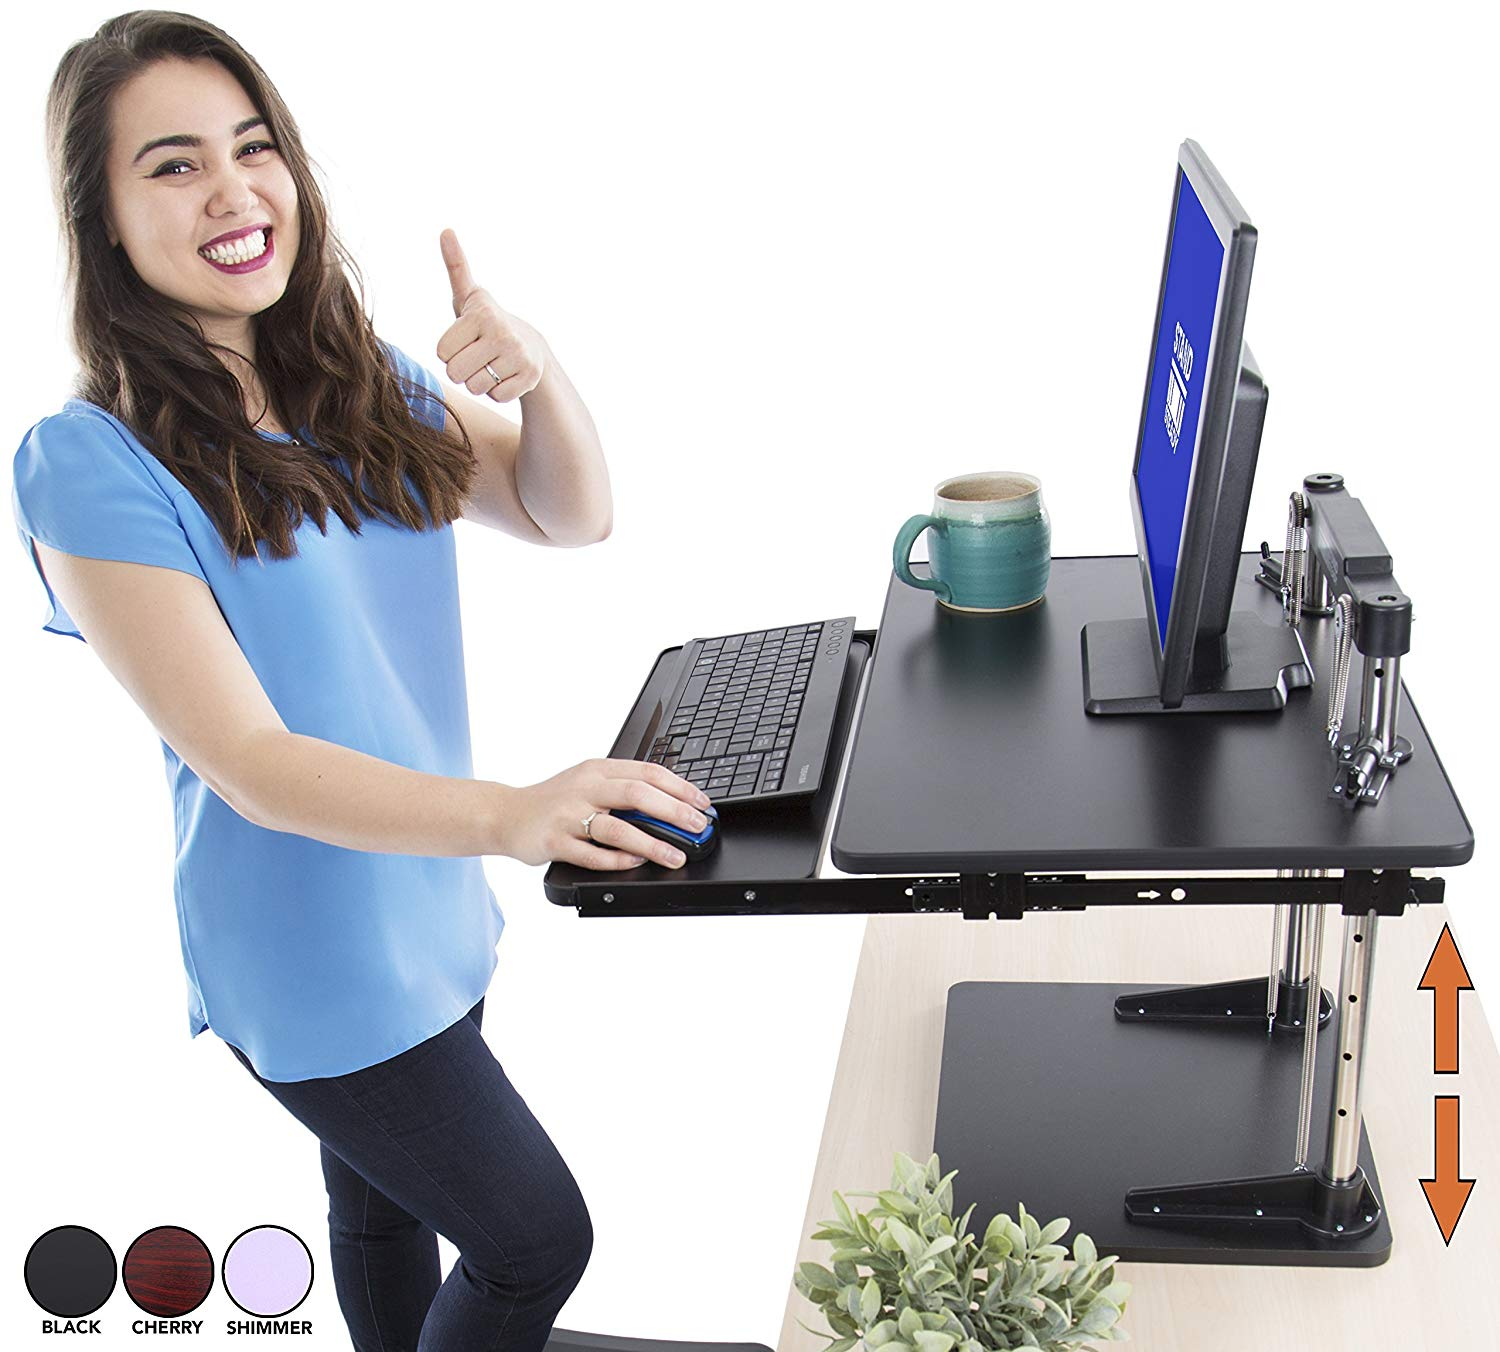 Review of The UpTrak Metro Standing Desk | Sit-to-Stand Desk Converter